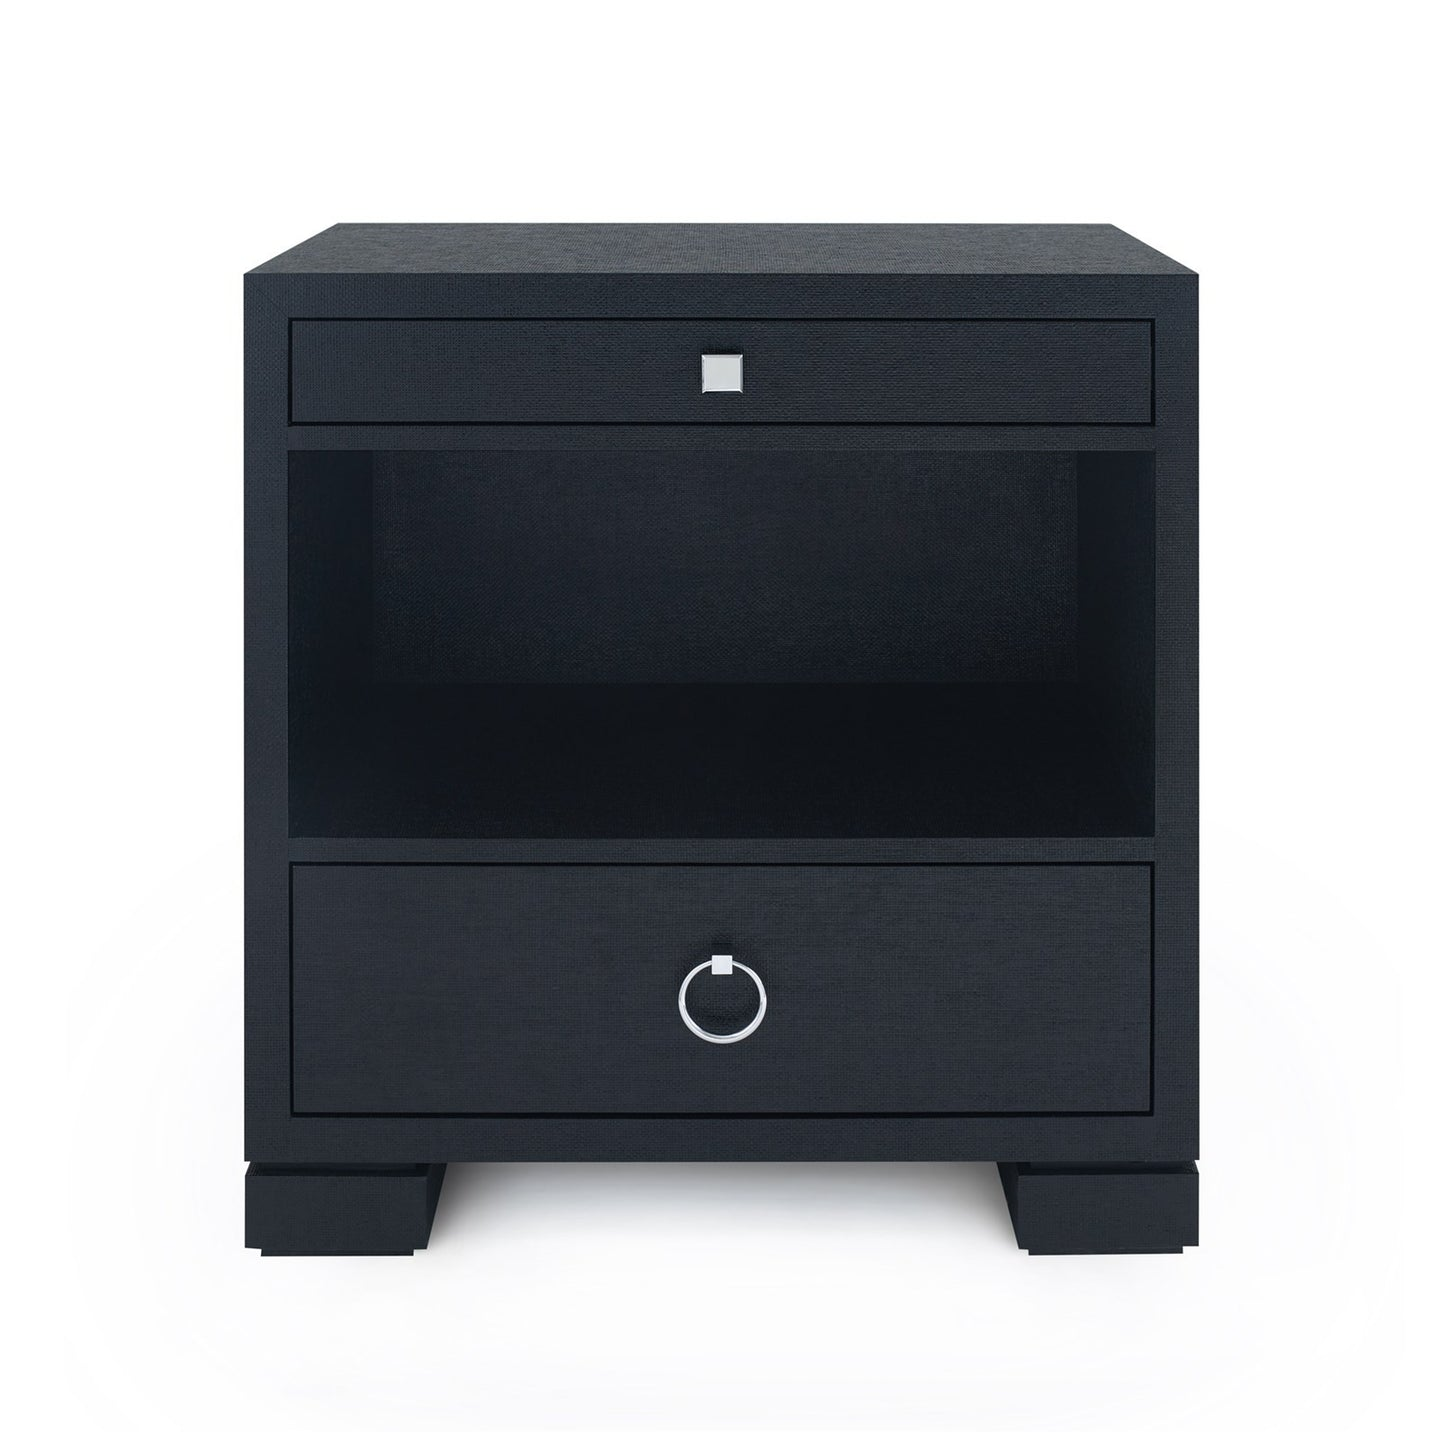 shipping station with bold garden side zayden free charging inspire by home overstock product table q today drawer